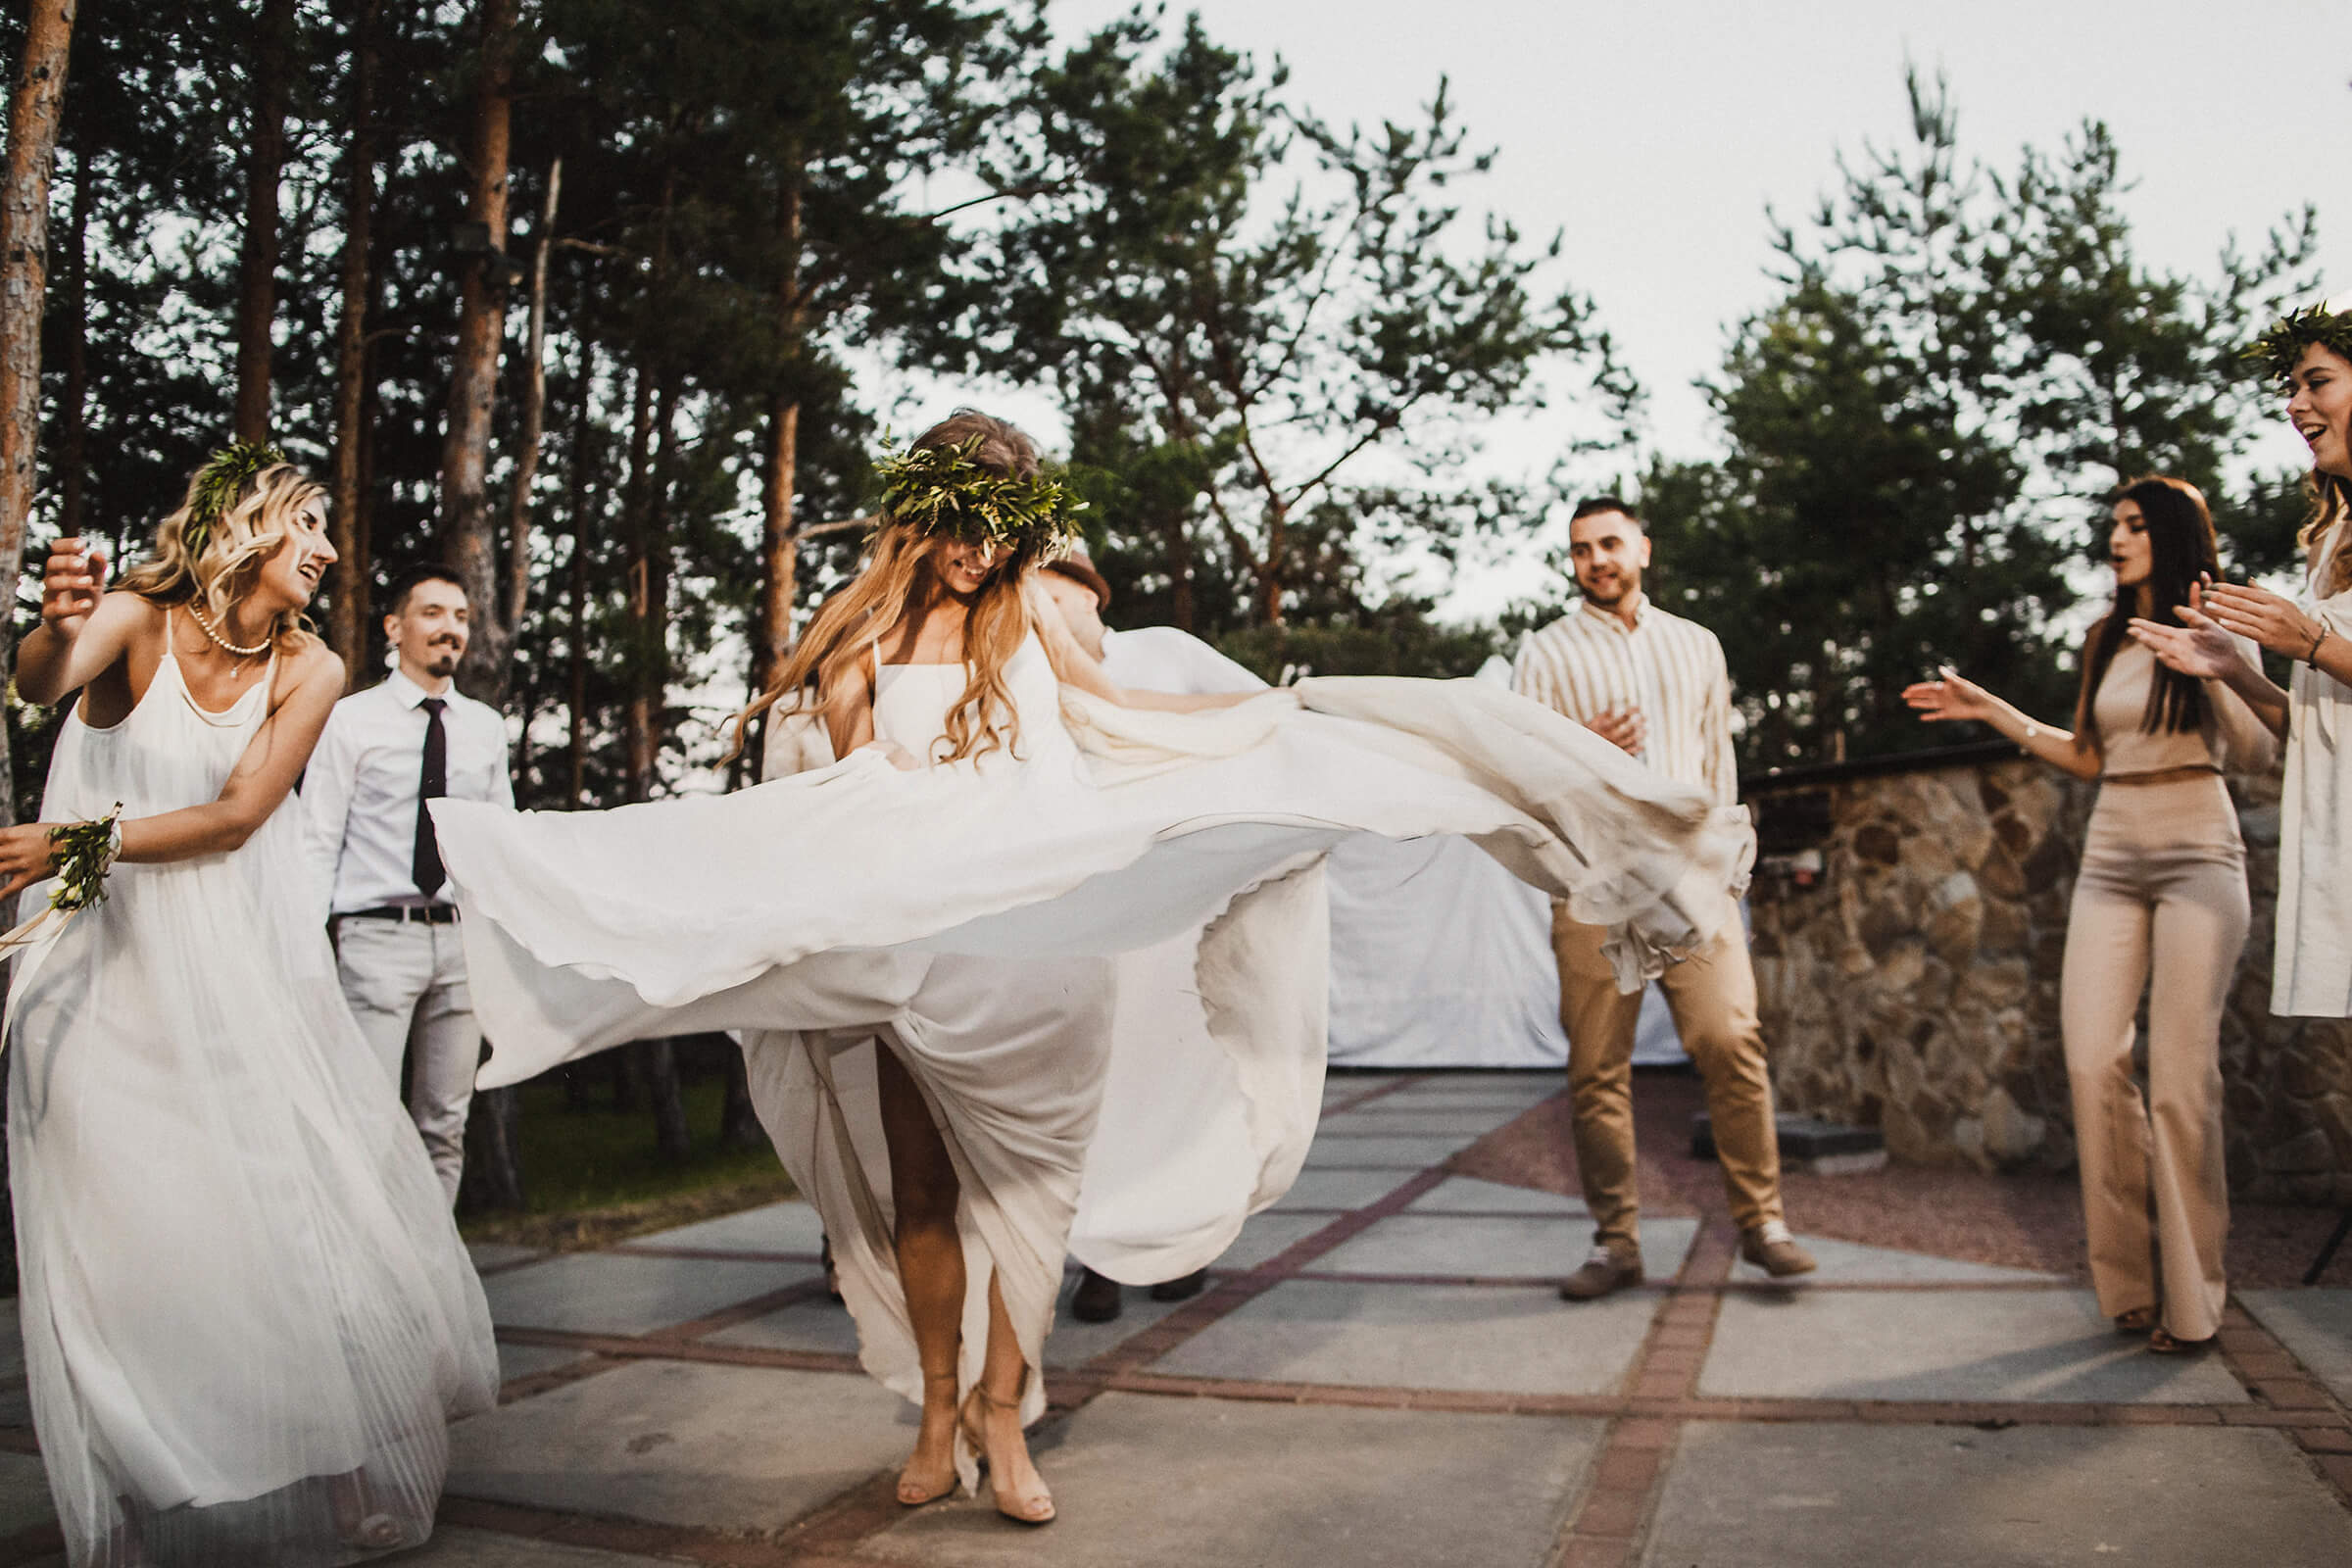 """WEDDING IN THE WOODS"" ДИМА И НАСТЯ фото AD 970"